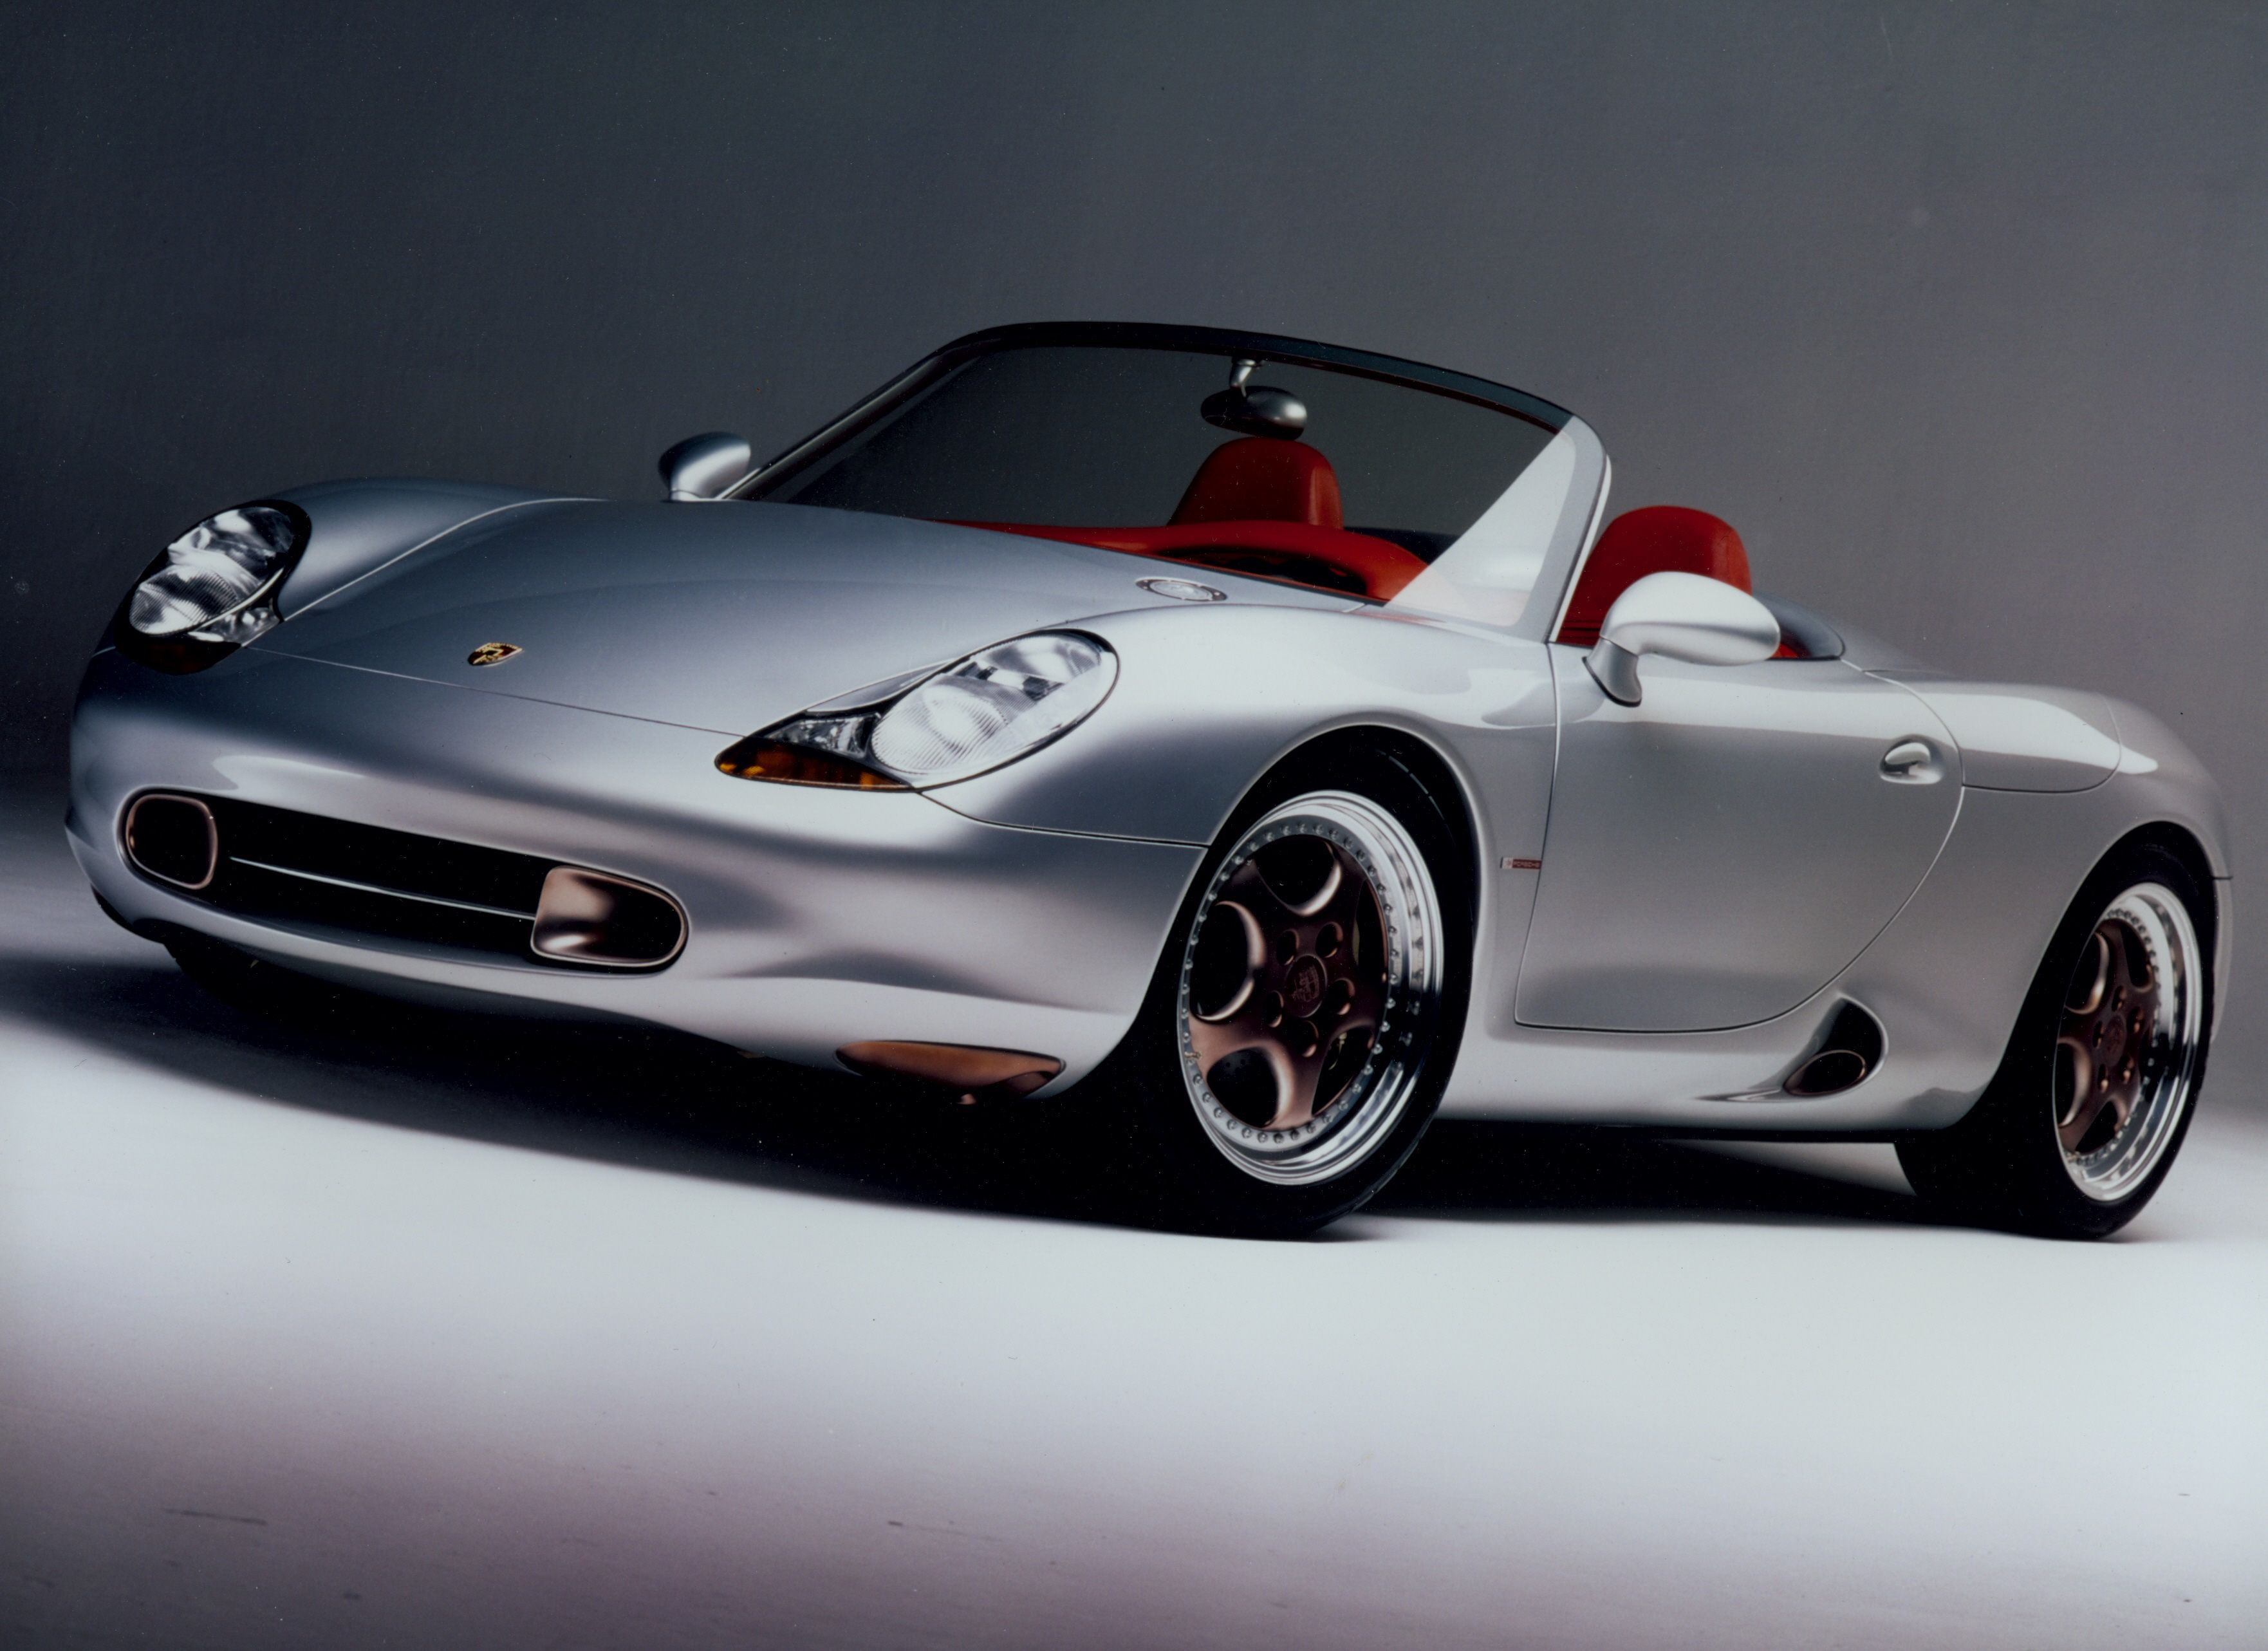 Study Of The 986 Boxster 1993 Shown Amongst Others In Detroit And Geneve Porsche Boxster Porsche Boxter Boxster